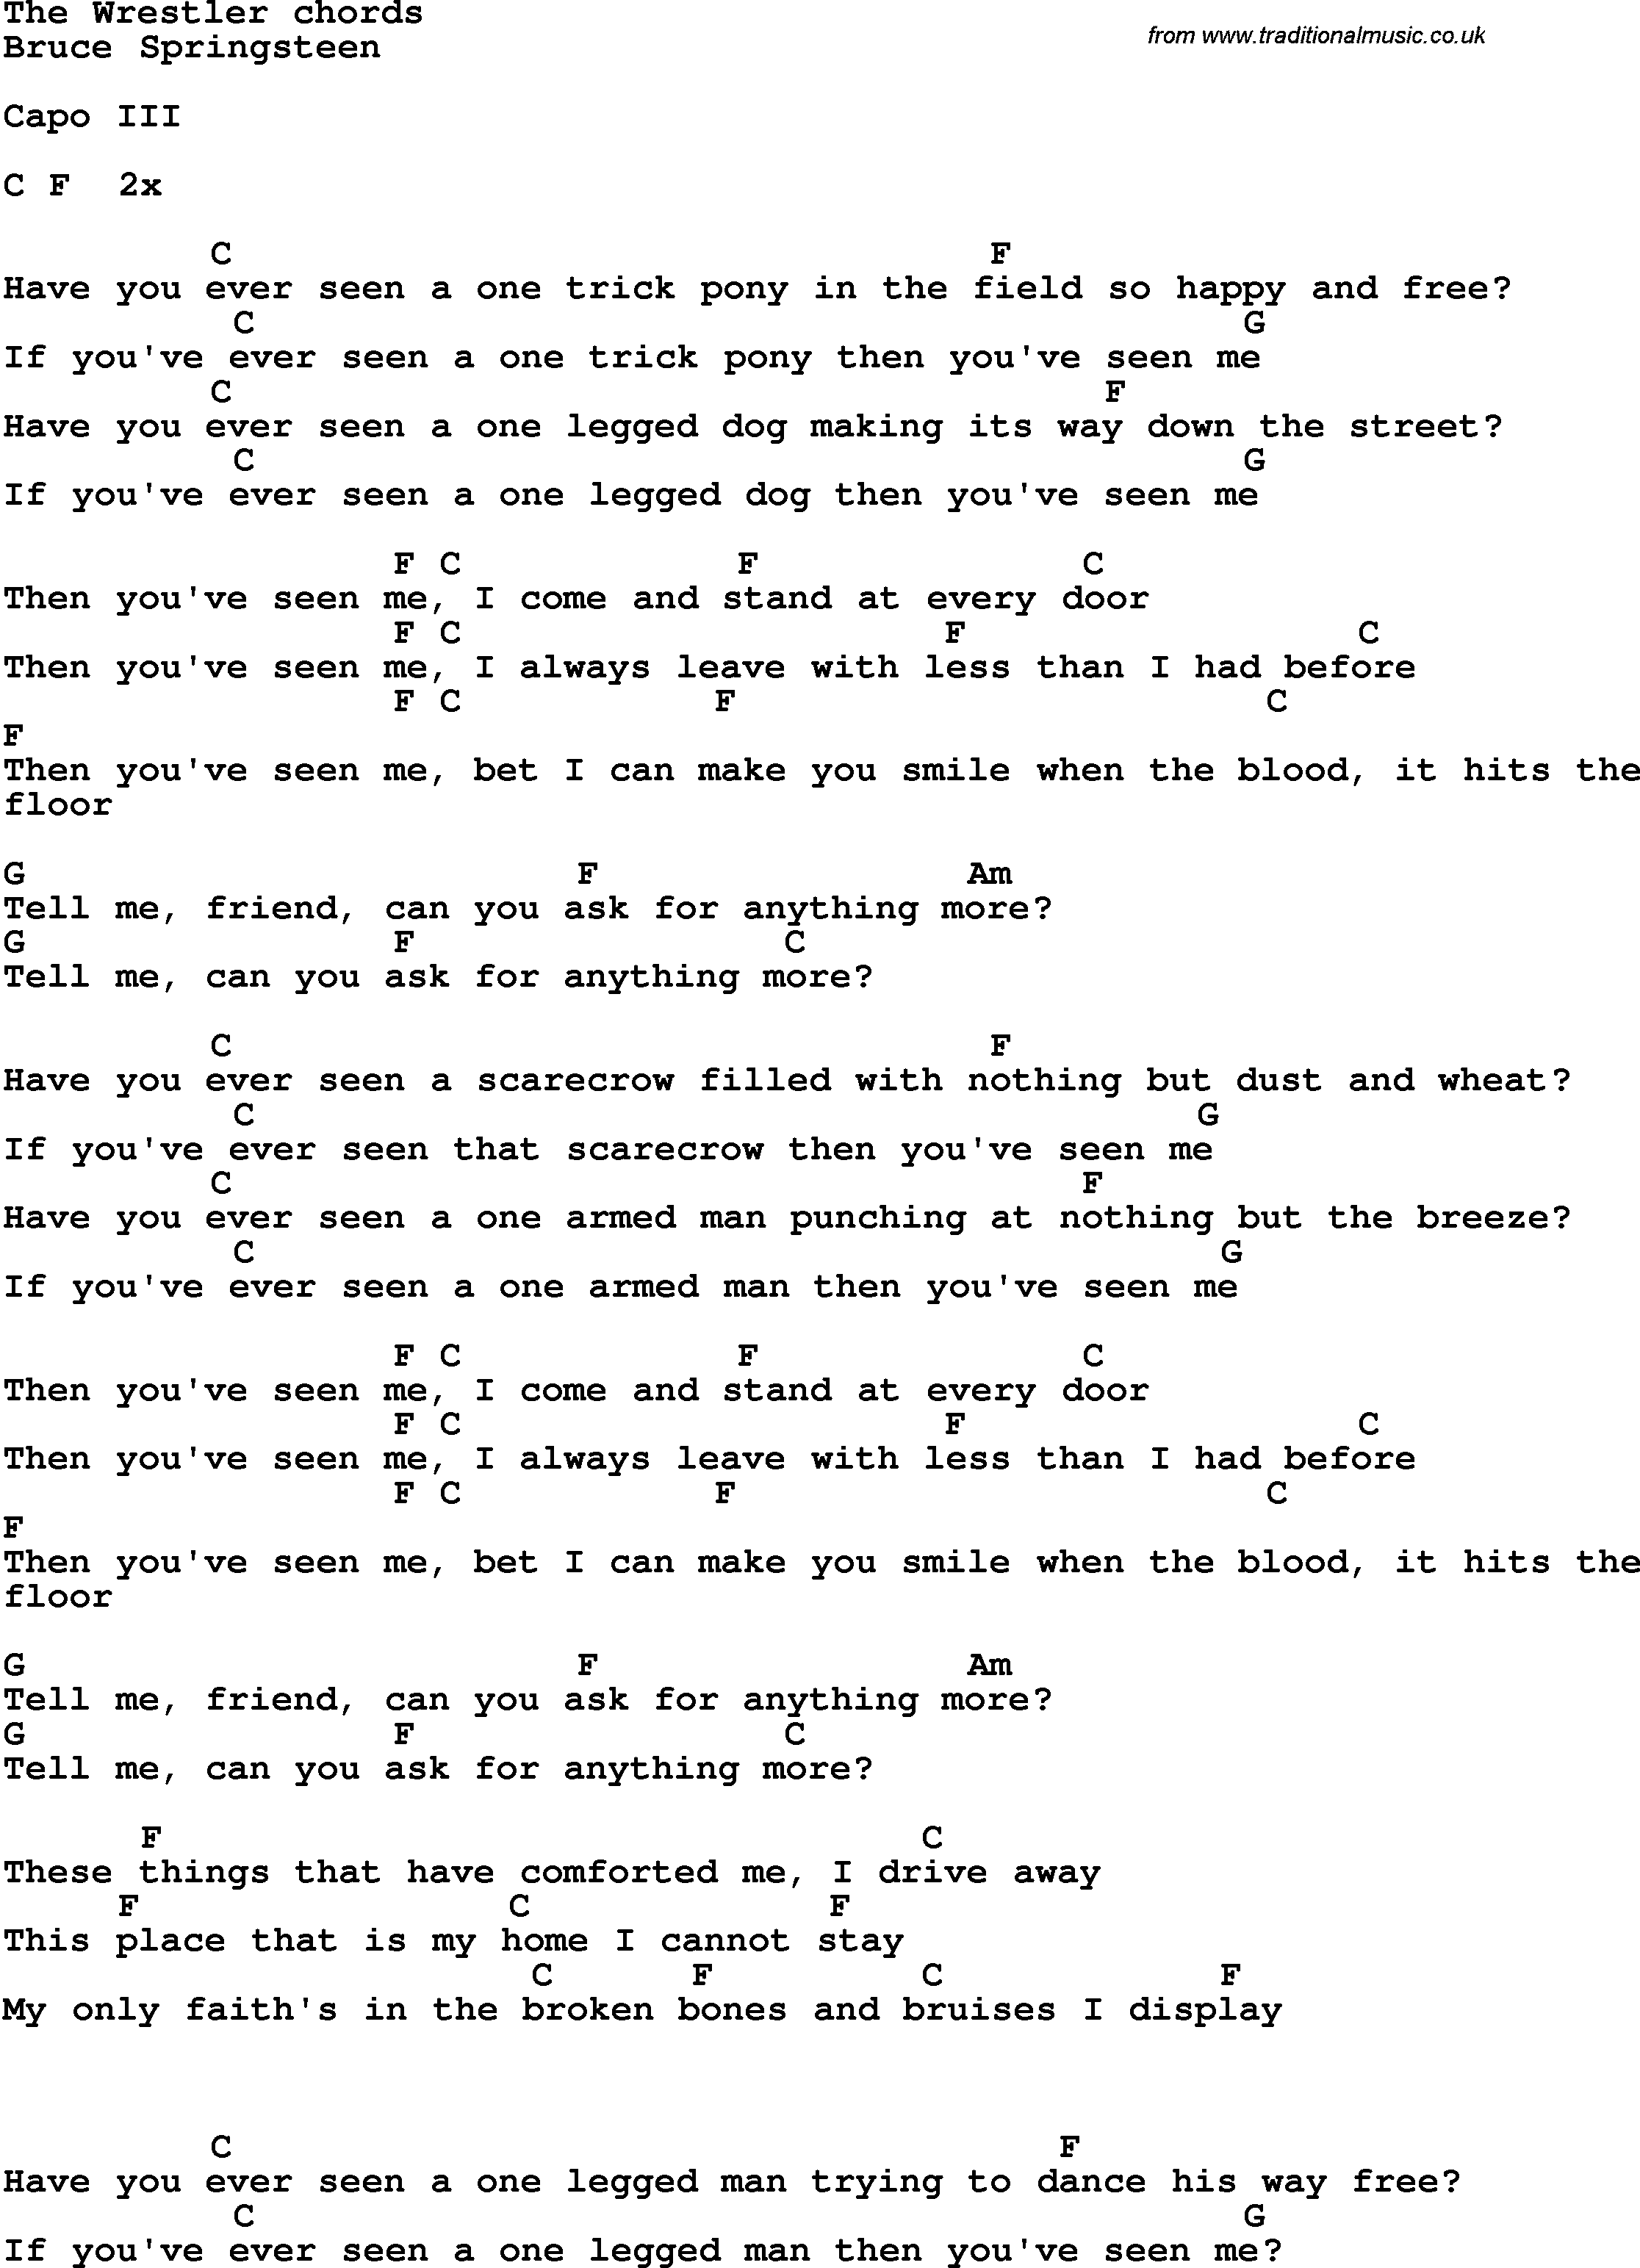 Song Lyrics With Guitar Chords For The Wrestler Bruce Springsteen